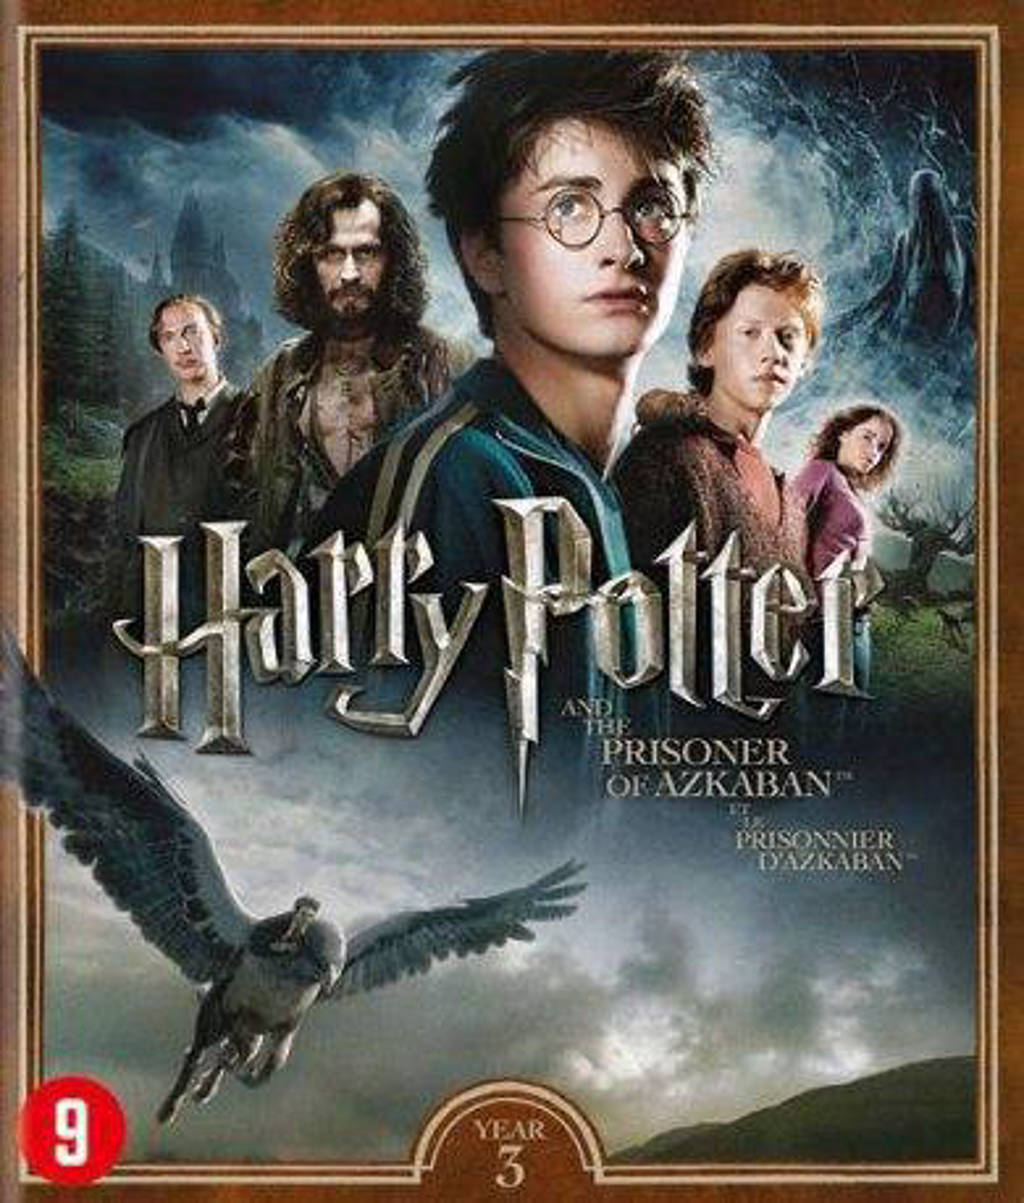 Harry Potter 3 - De gevangene van Azkaban (Blu-ray)